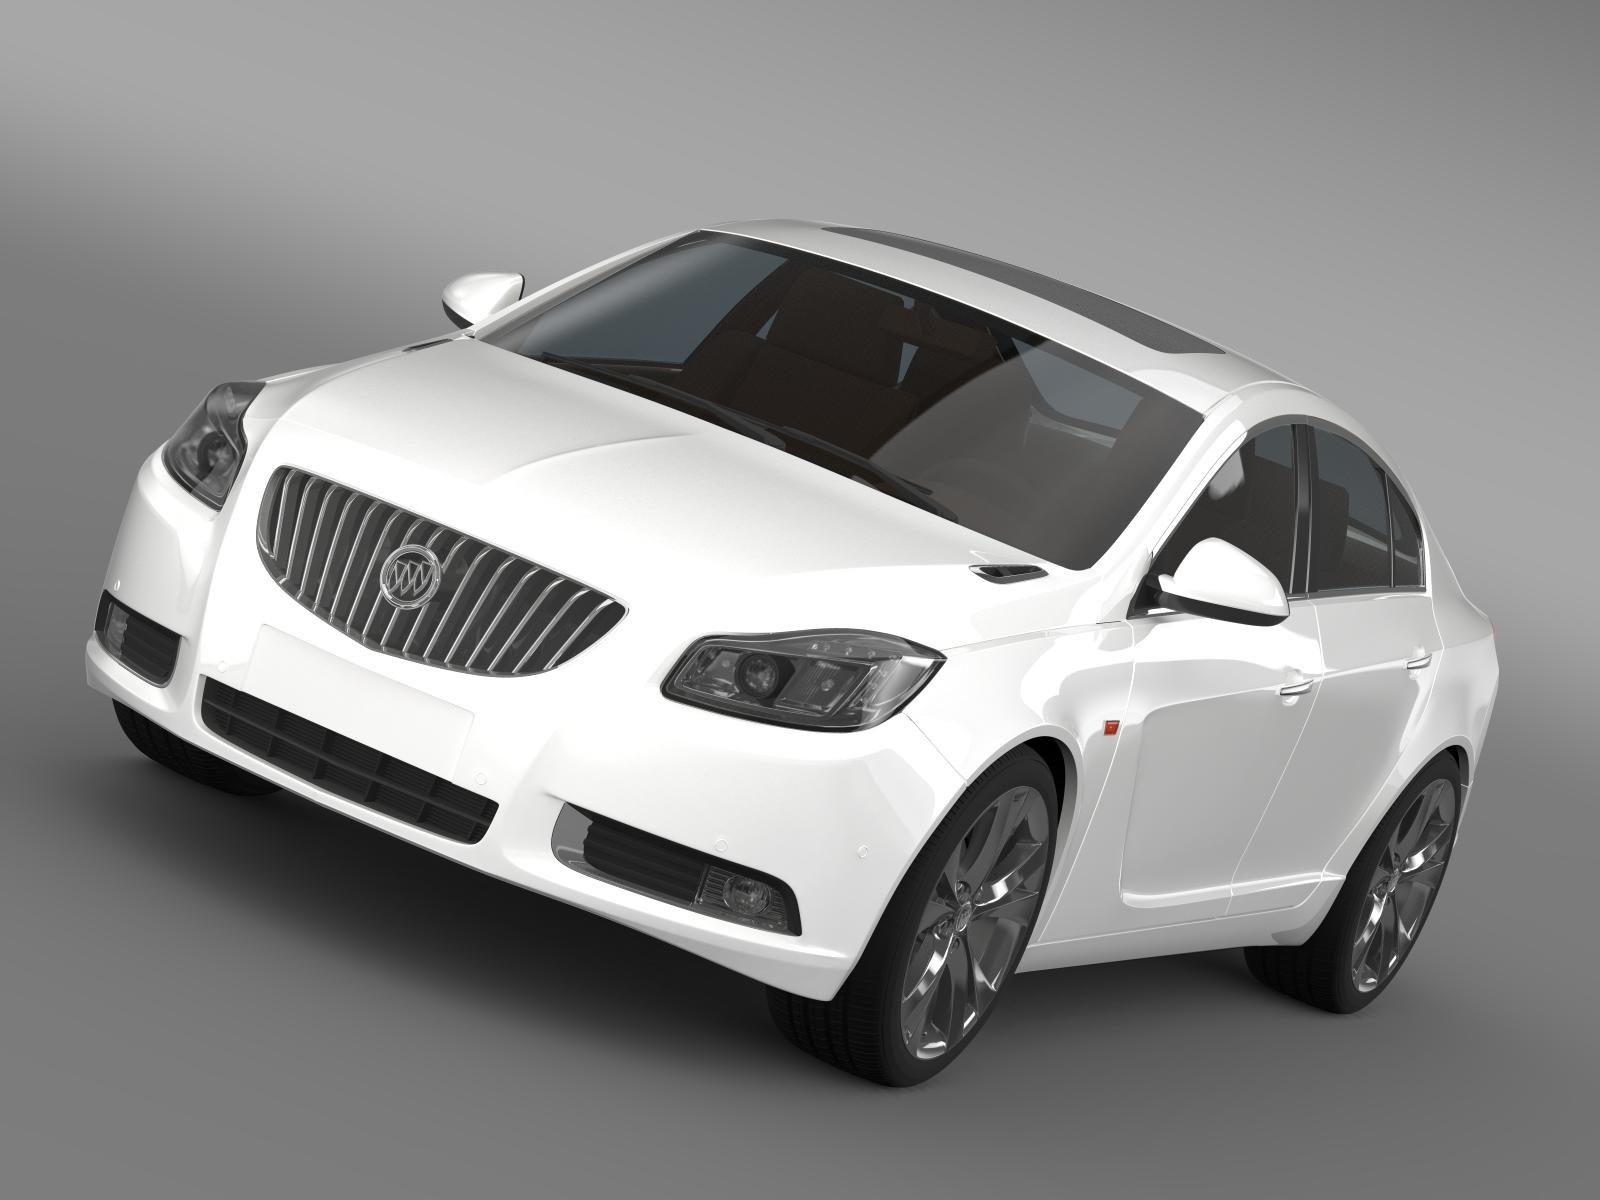 buick regal 2011-2013 3d model 3ds max fbx c4d lwo ma mb hrc xsi obj 165426